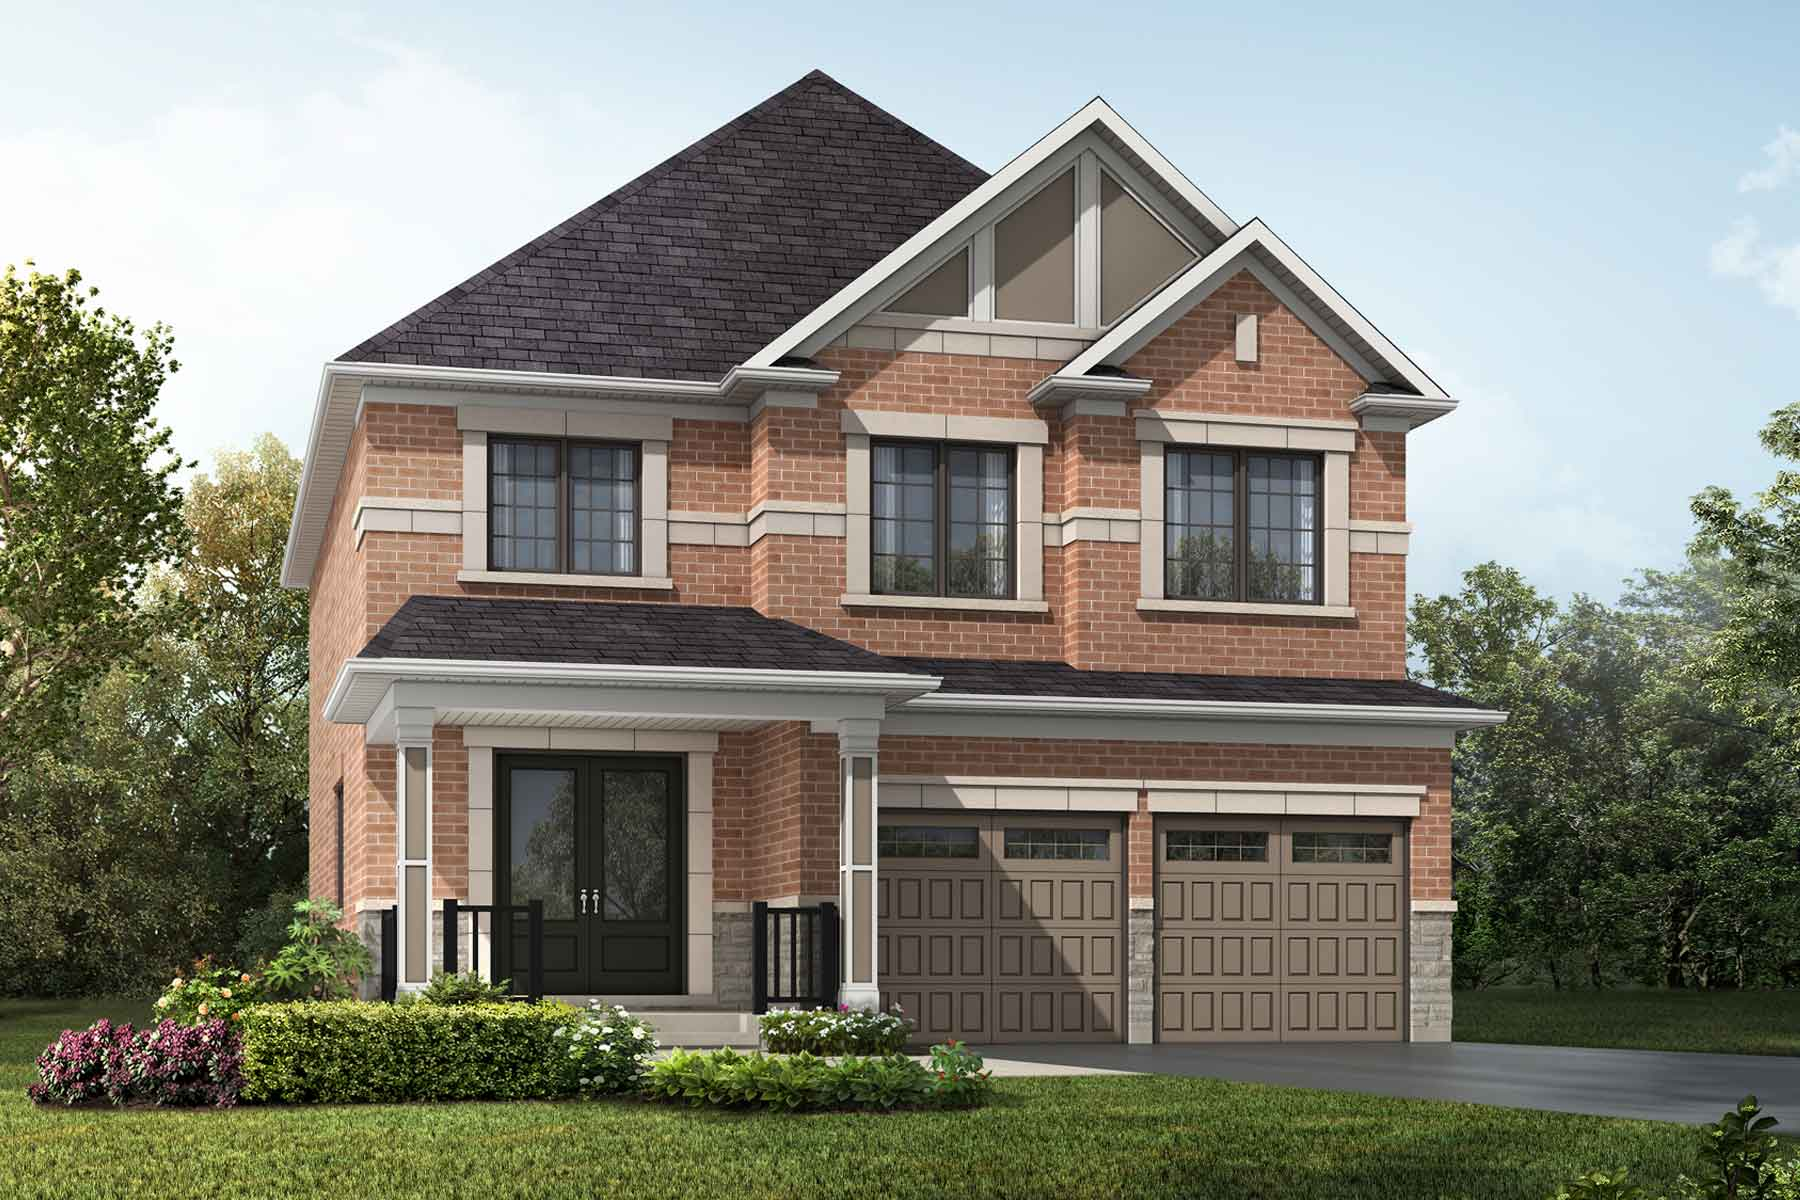 Springwater traditional_springwater_iris_main in Markham Ontario by Mattamy Homes